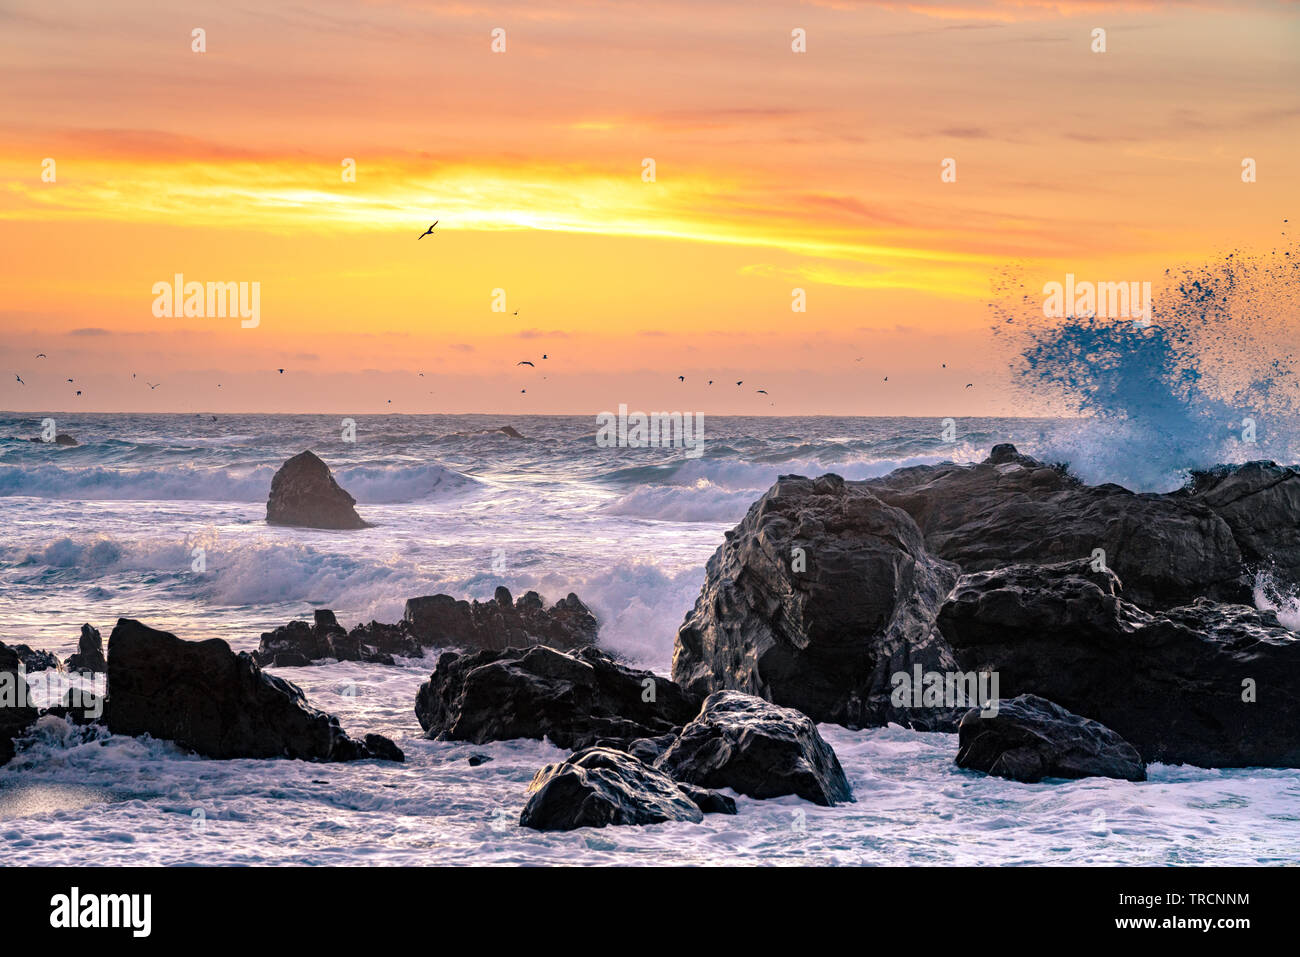 Big Sur, California - Beautiful sunset on a California beach with large waves crashing over rocks and a flock birds flying in the distance. Stock Photo